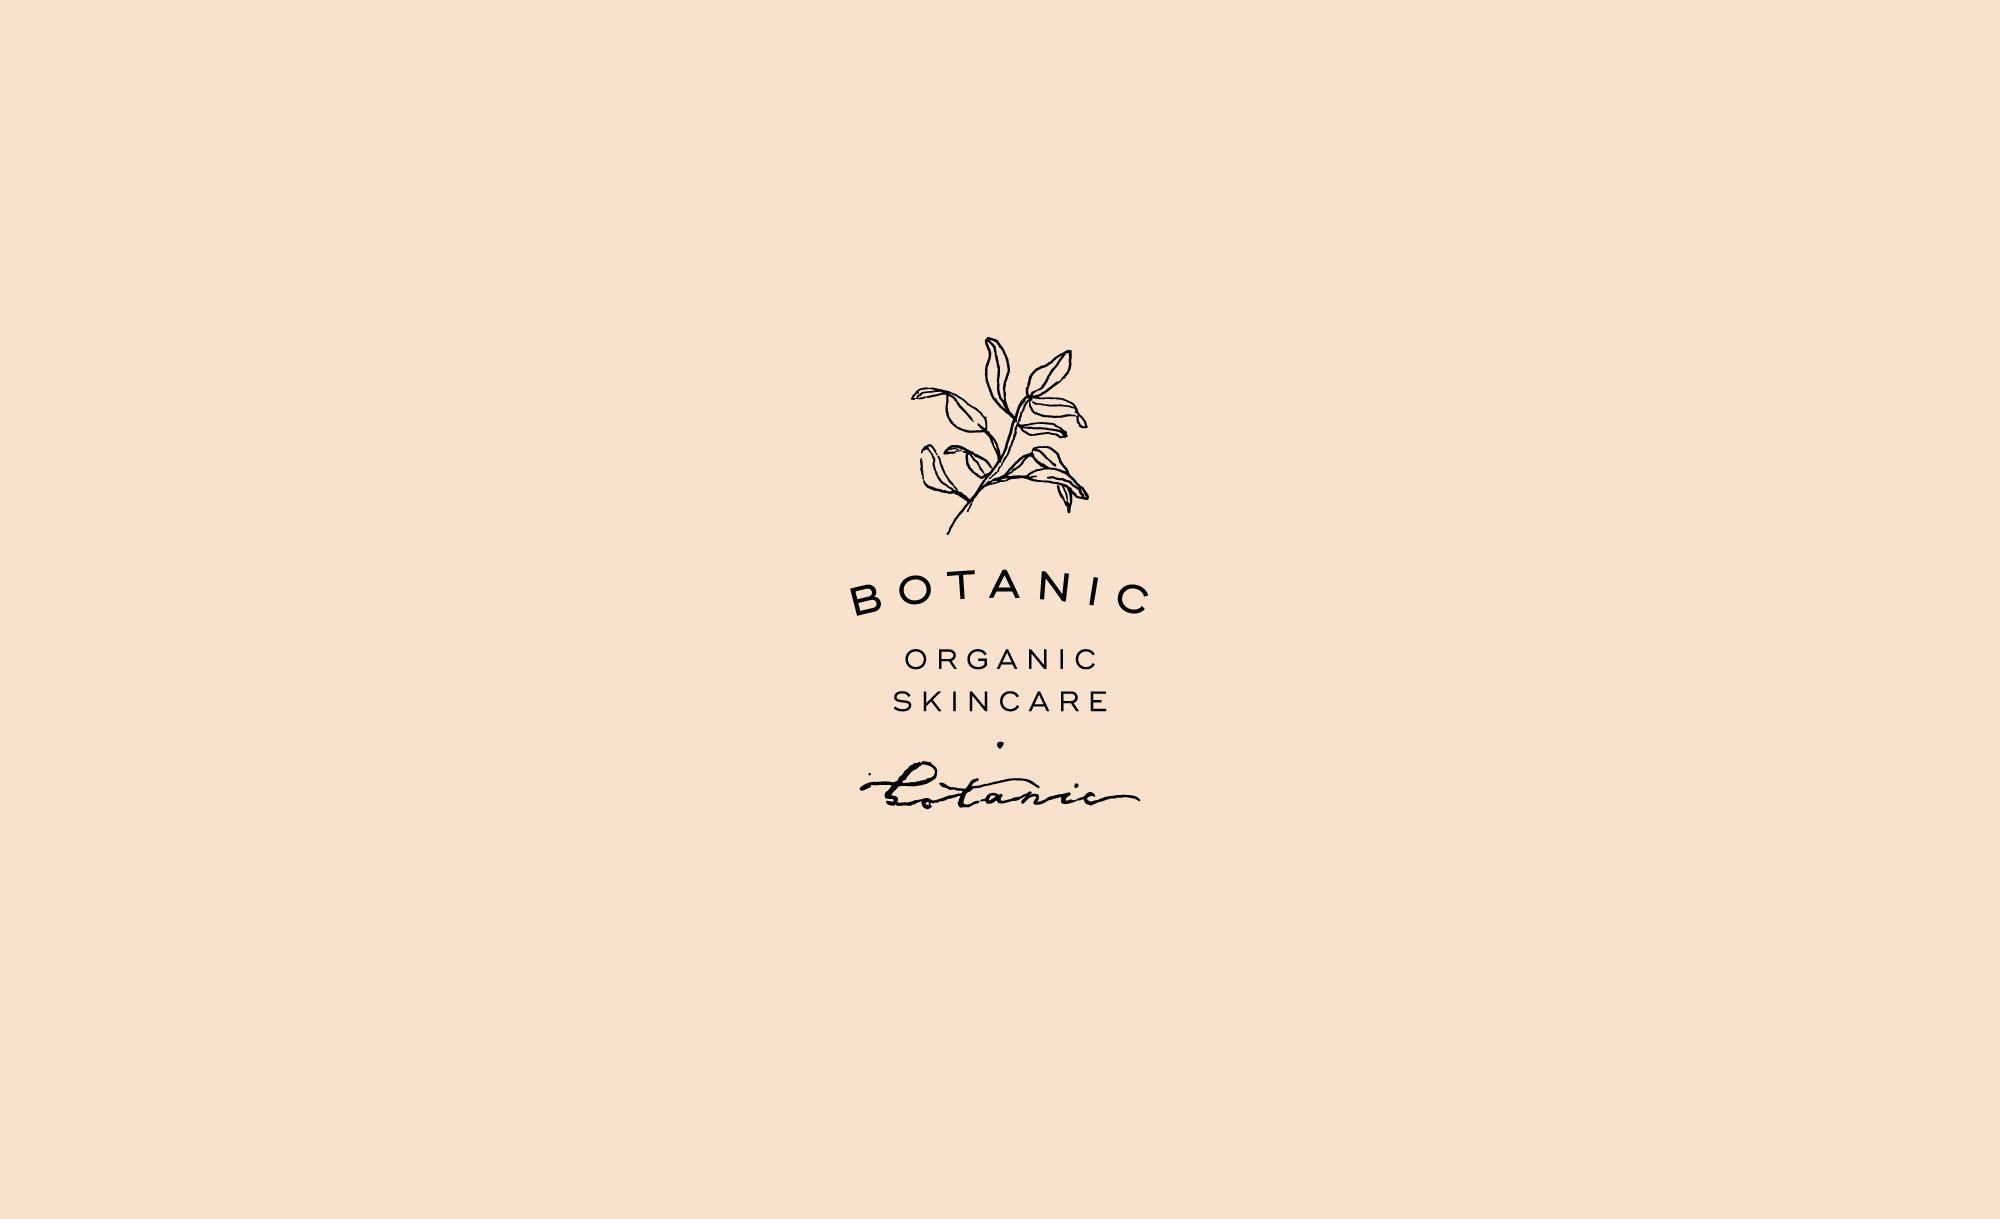 Botanic Organic Skincare Brand and Packaging Design by Viola Hill Studio